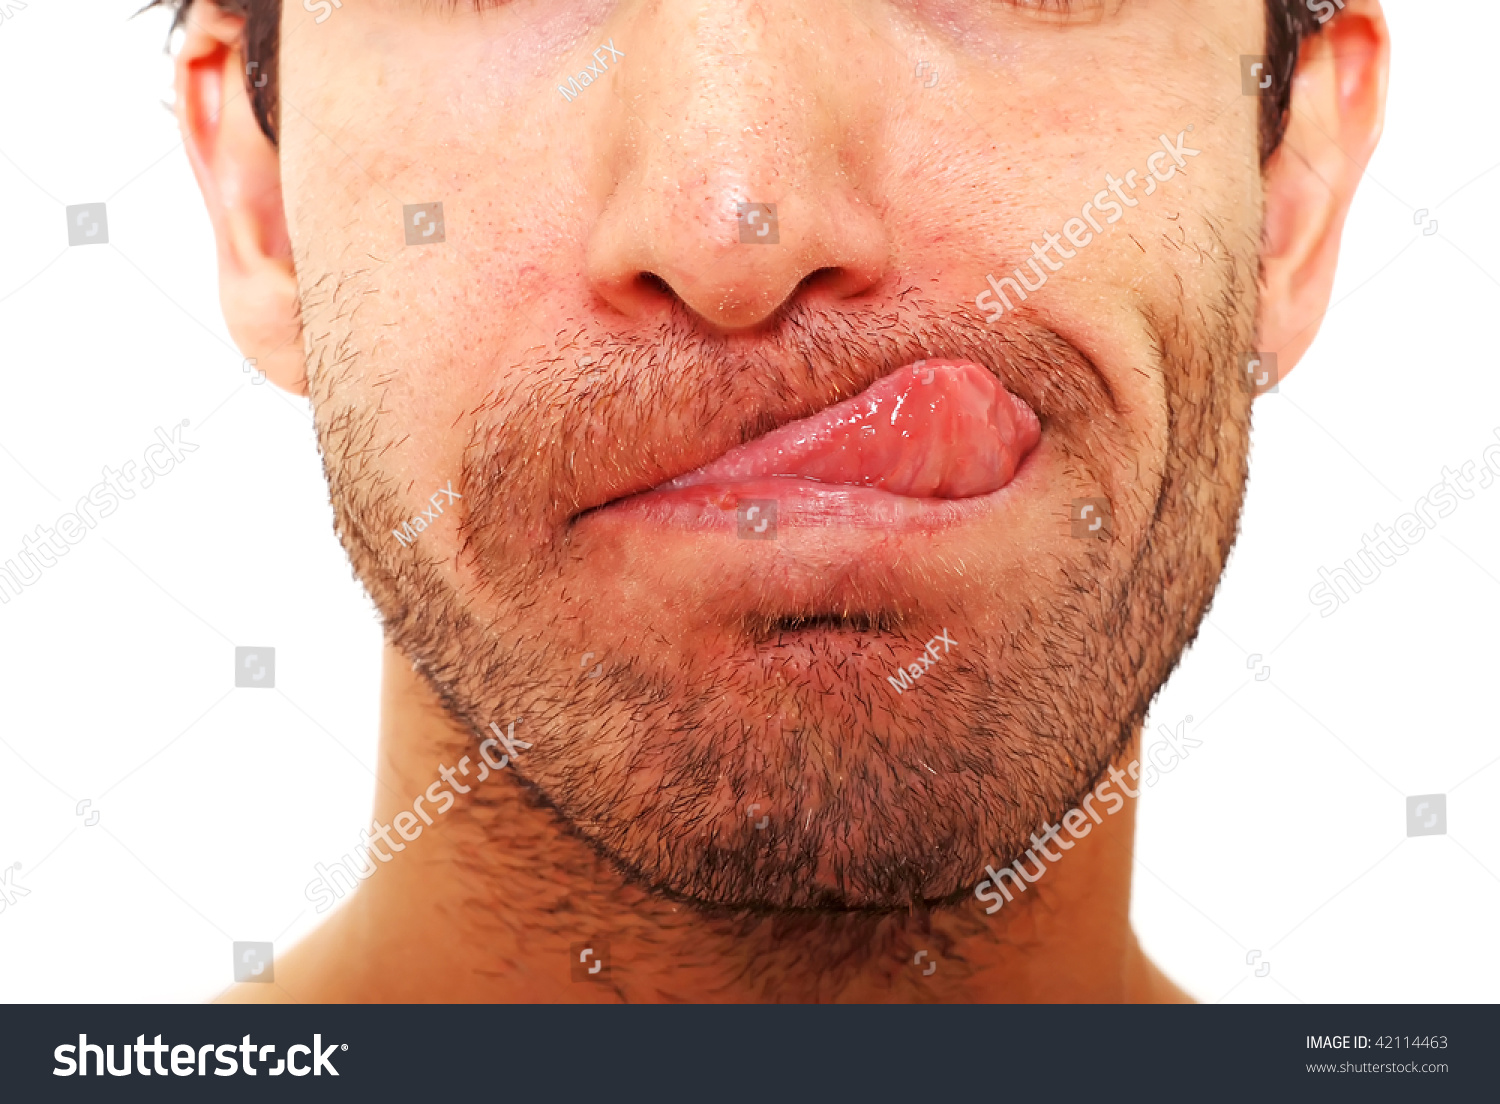 Closeup of a man's face with his tongue out